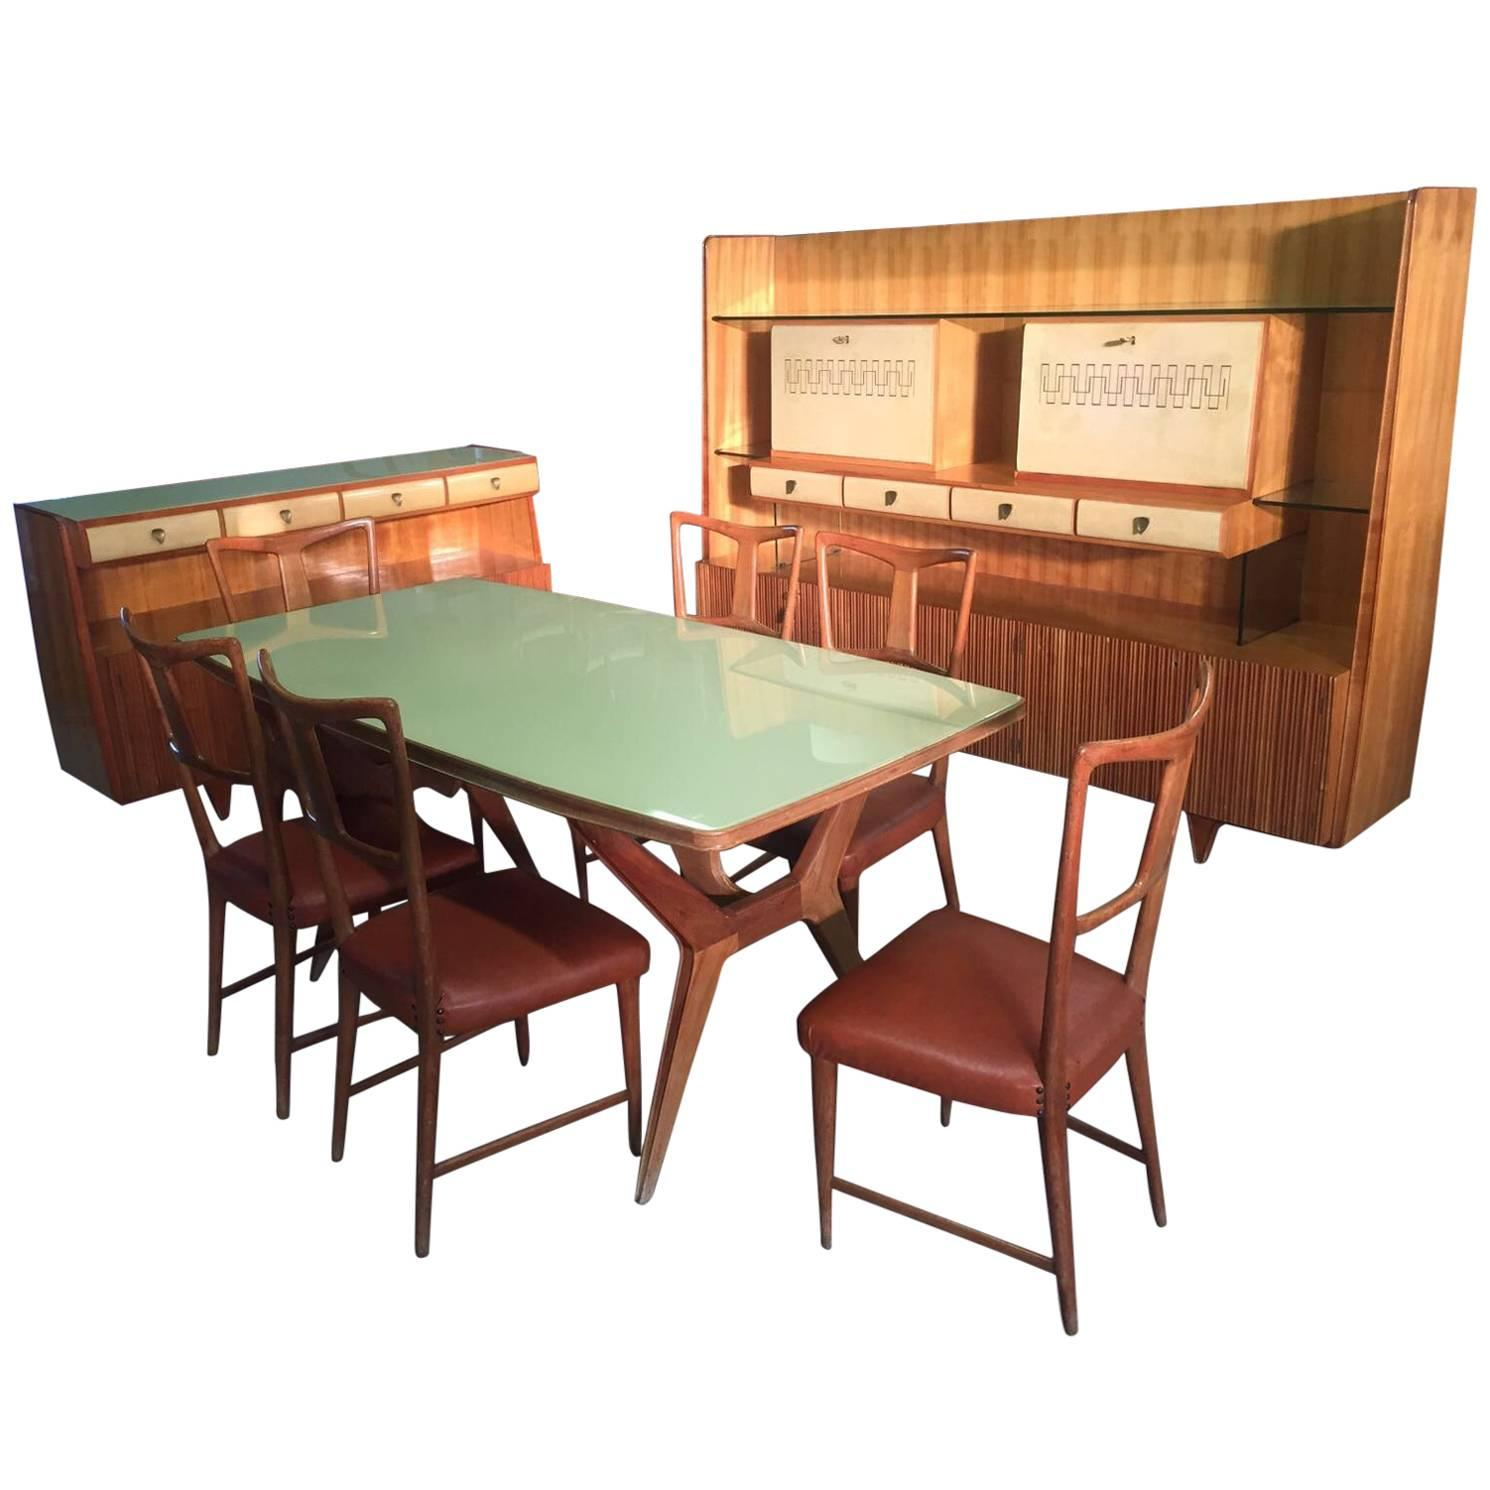 Italian Dining Room Sets By U0027La Permanente Mobili Cantuu0027 Attributed To Gio  Ponti For